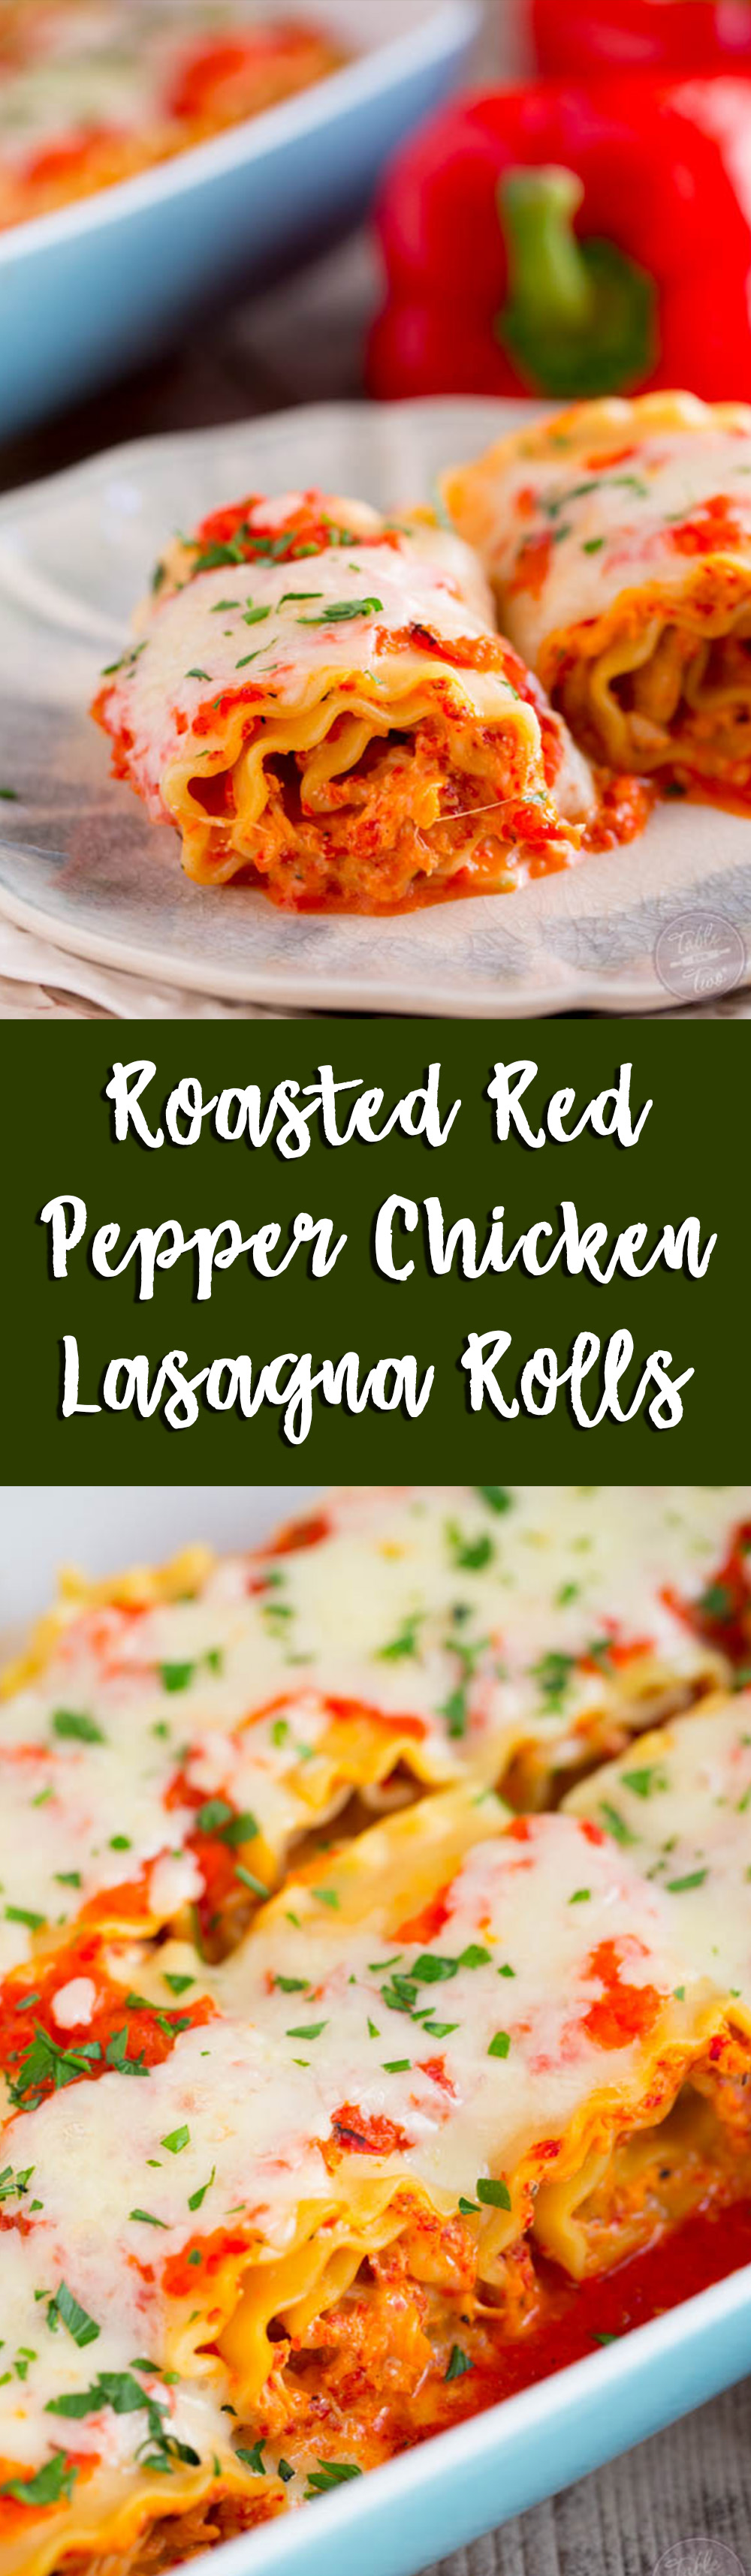 Roasted red pepper chicken lasagna rolls are a flavorful and fun twist on the classic way lasagna! Give these rolls a try!